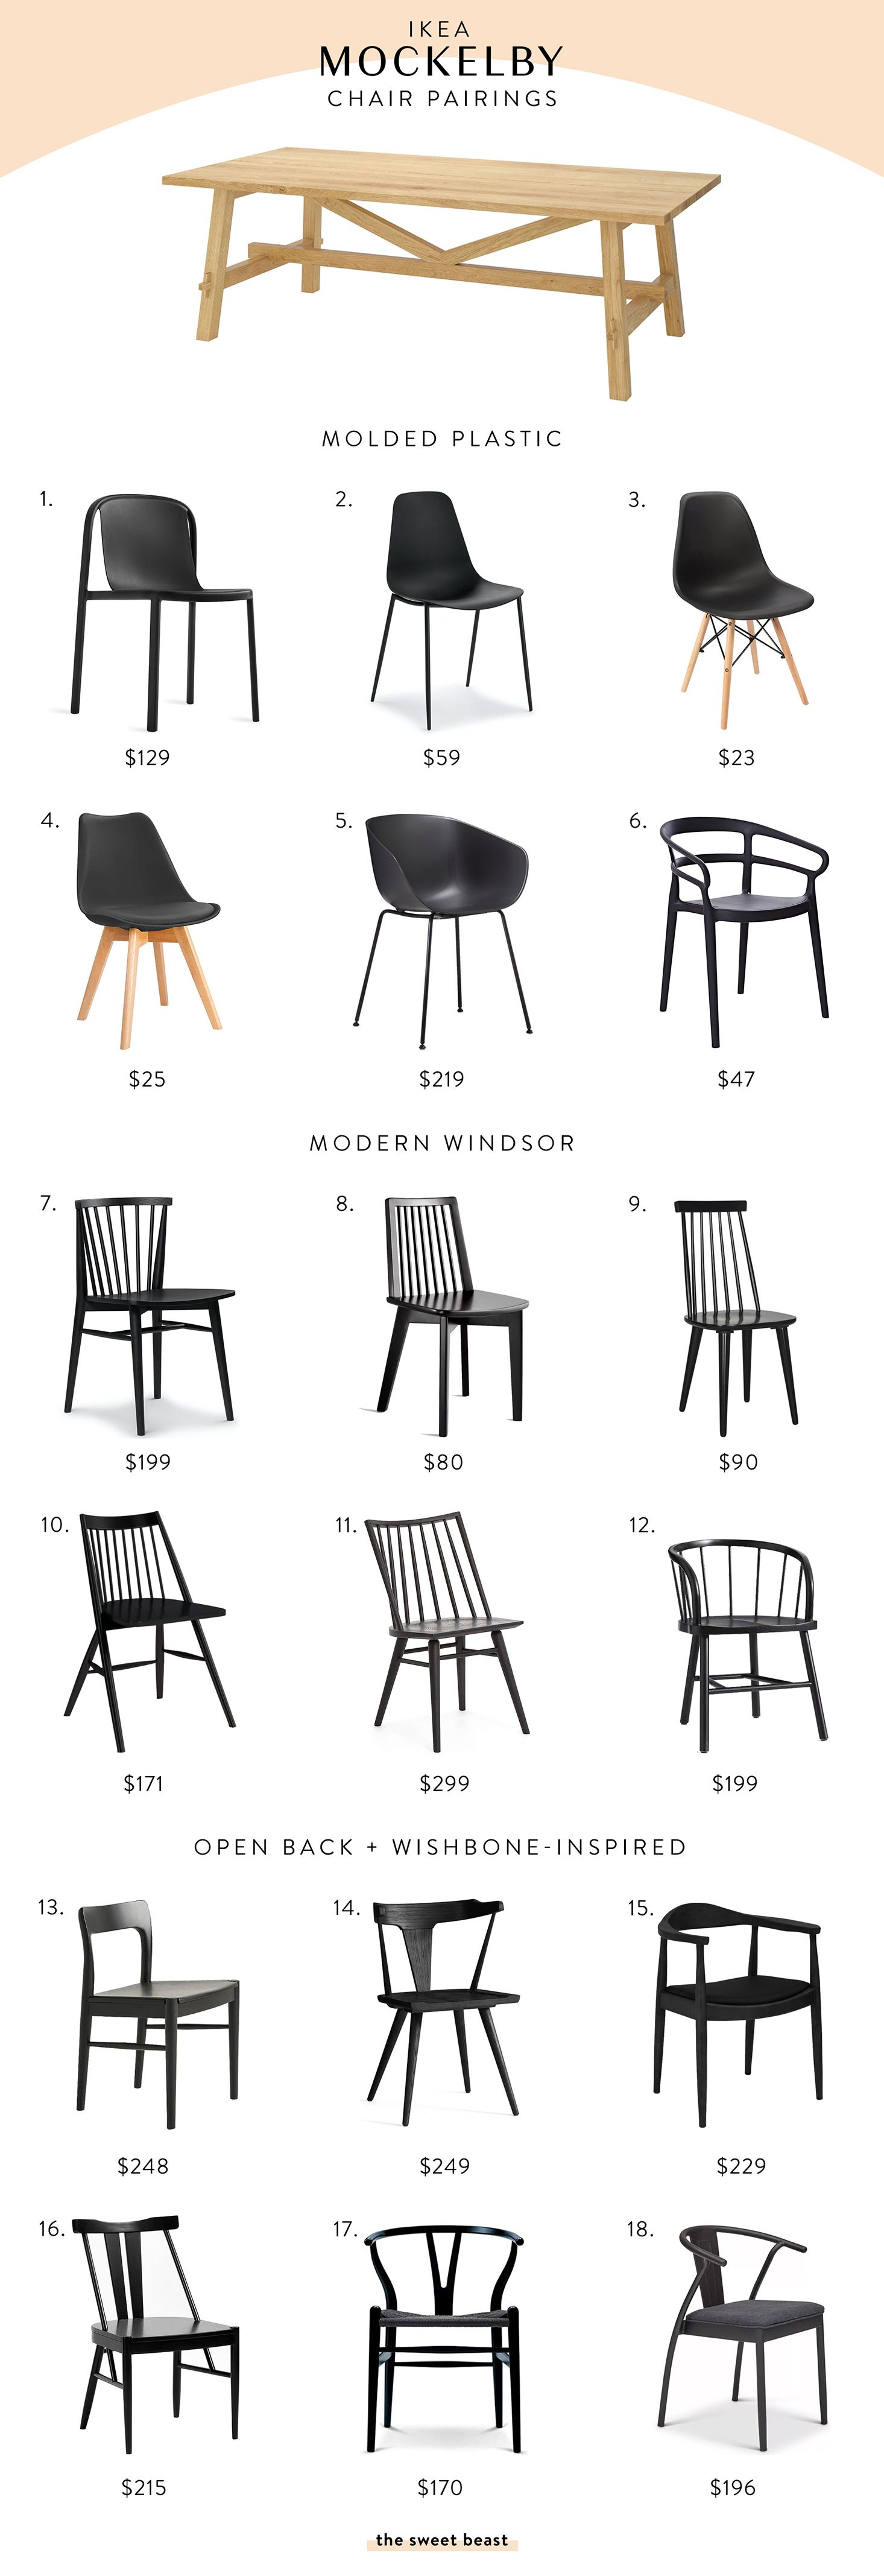 18 Black Chairs to Pair with the IKEA MOCKELBY Dining Table